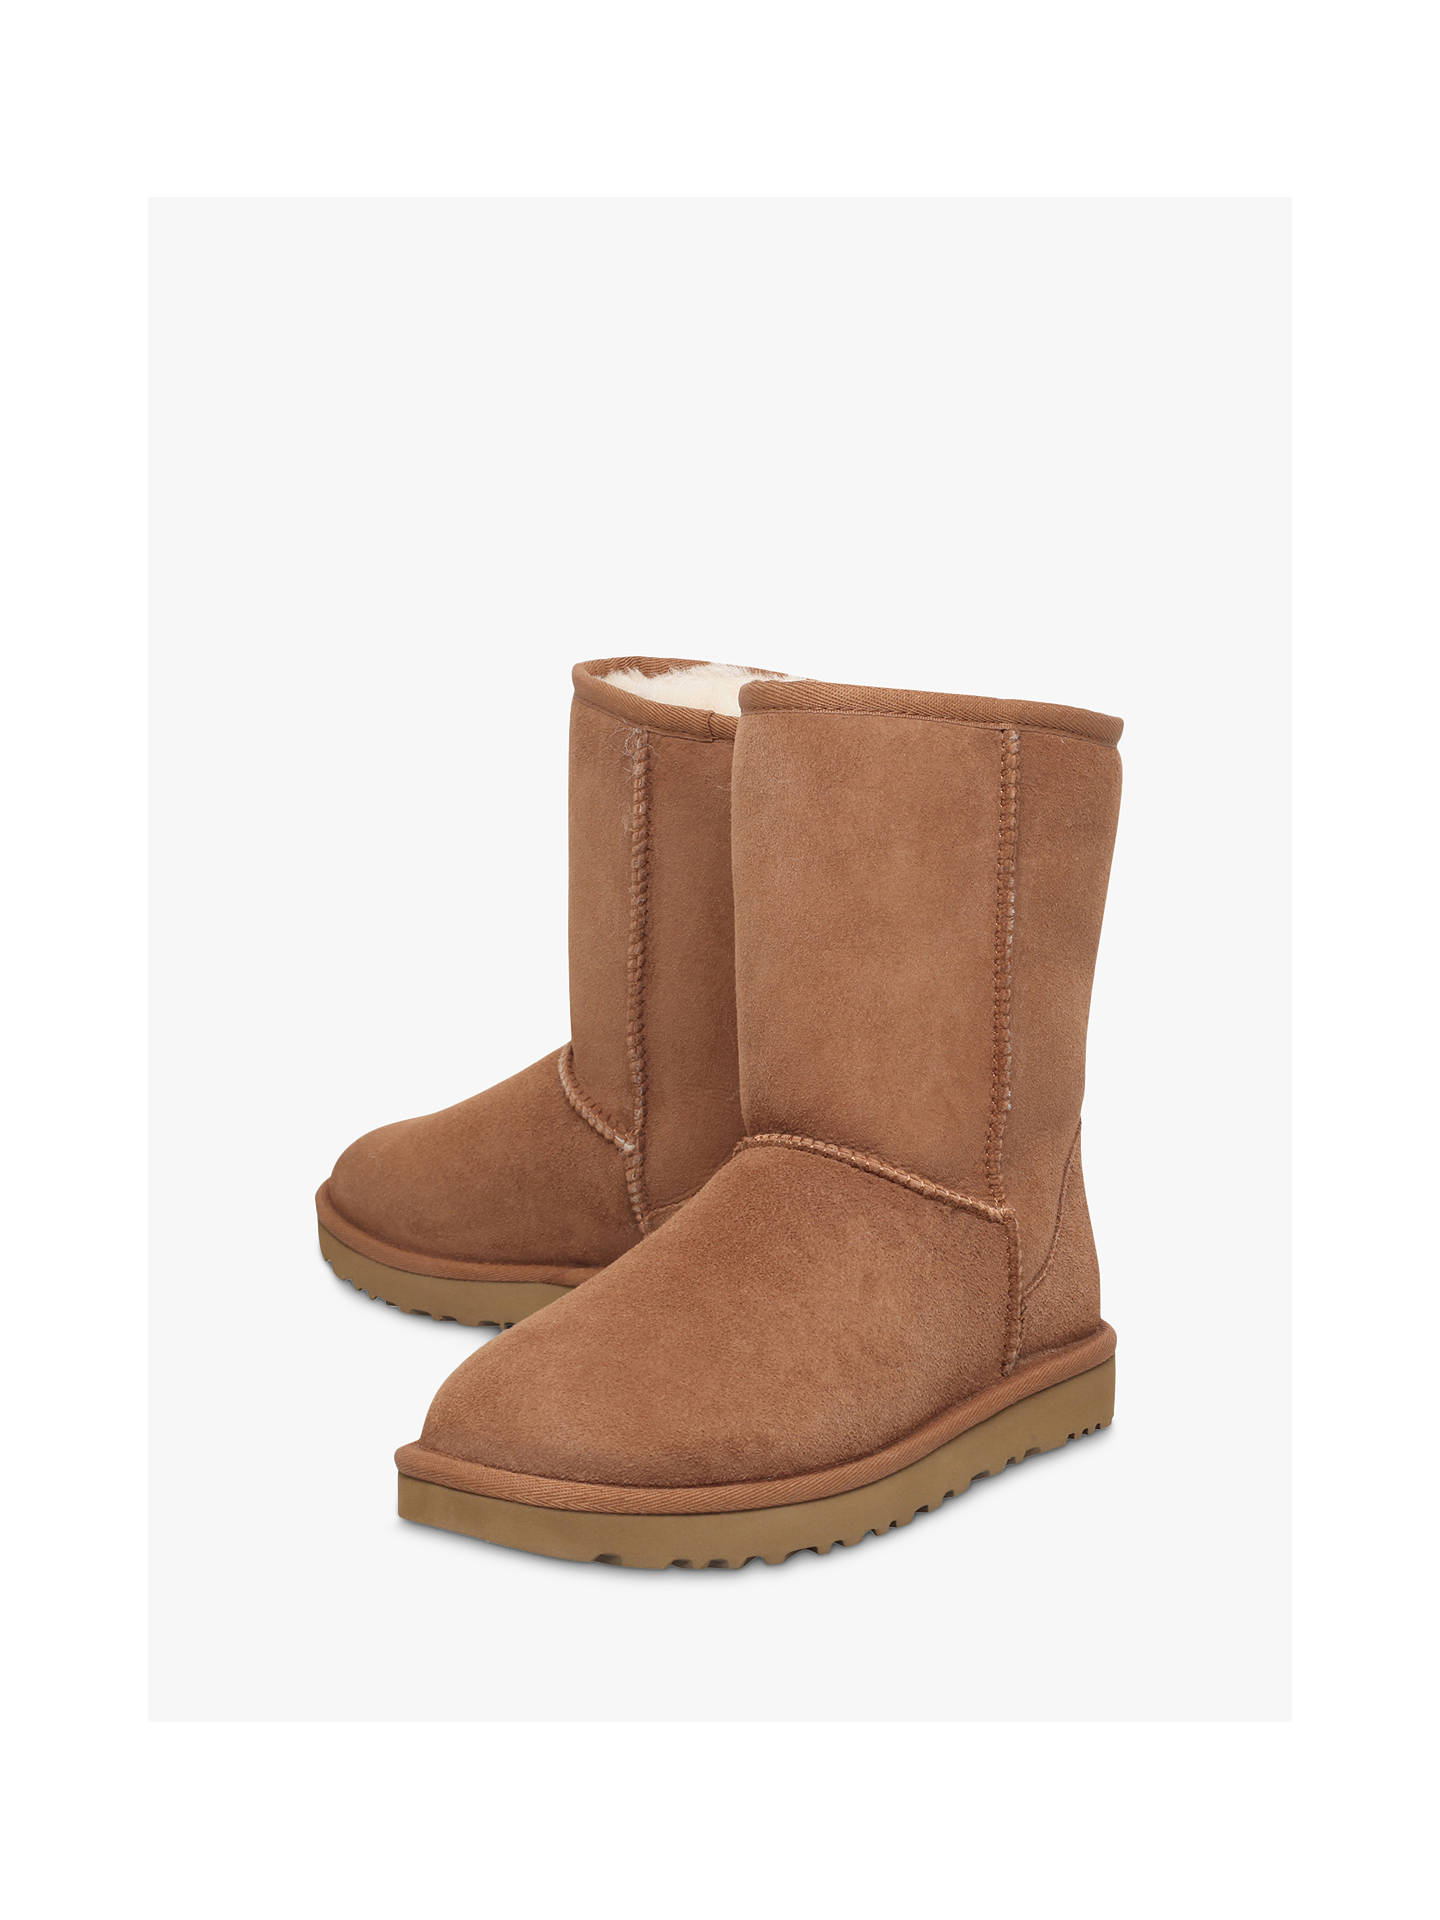 cdfb3a1813c UGG Classic II Short Sheepskin Ankle Boots, Chestnut